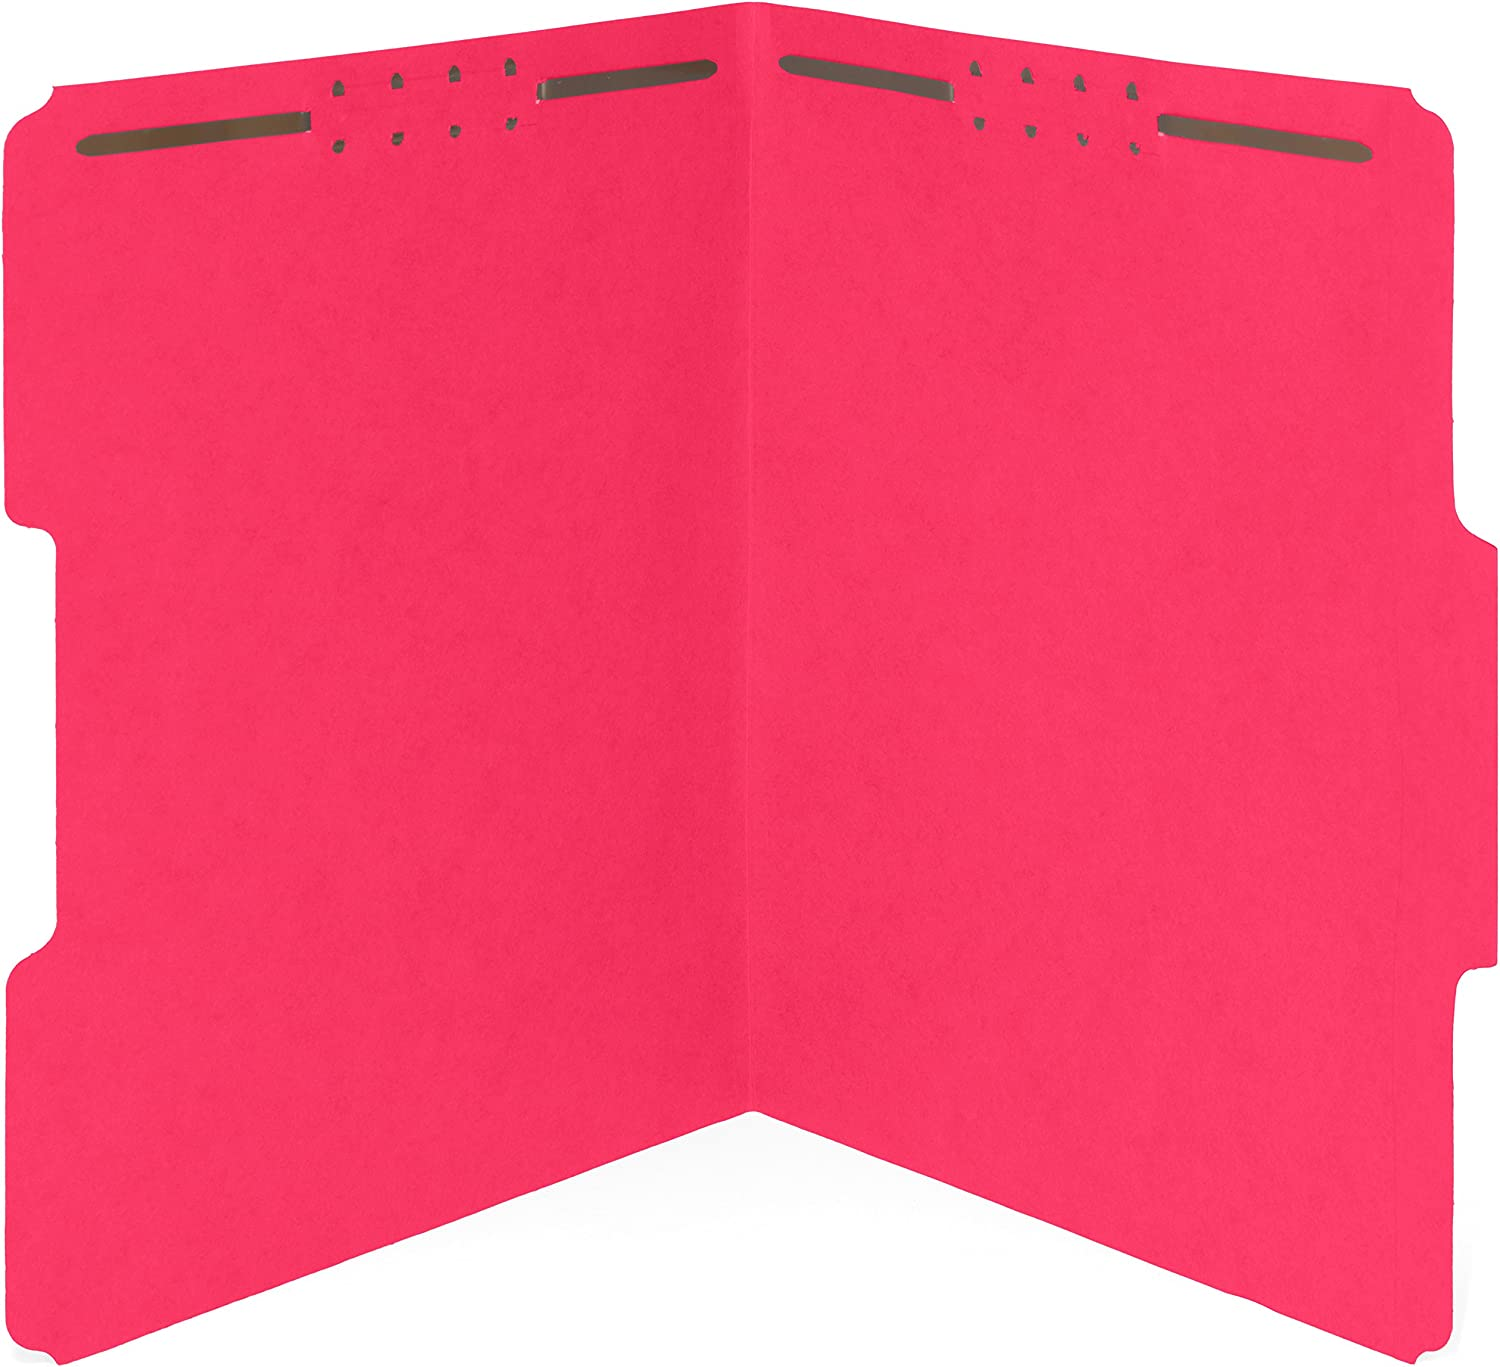 50 Red Fastener File Folders - 1/3 Cut Reinforced Assorted Tab - Durable 2 Prongs Designed to Organize Standard Medical Files, Law Client Files, Office Reports - Letter Size, Red, 50 Pack